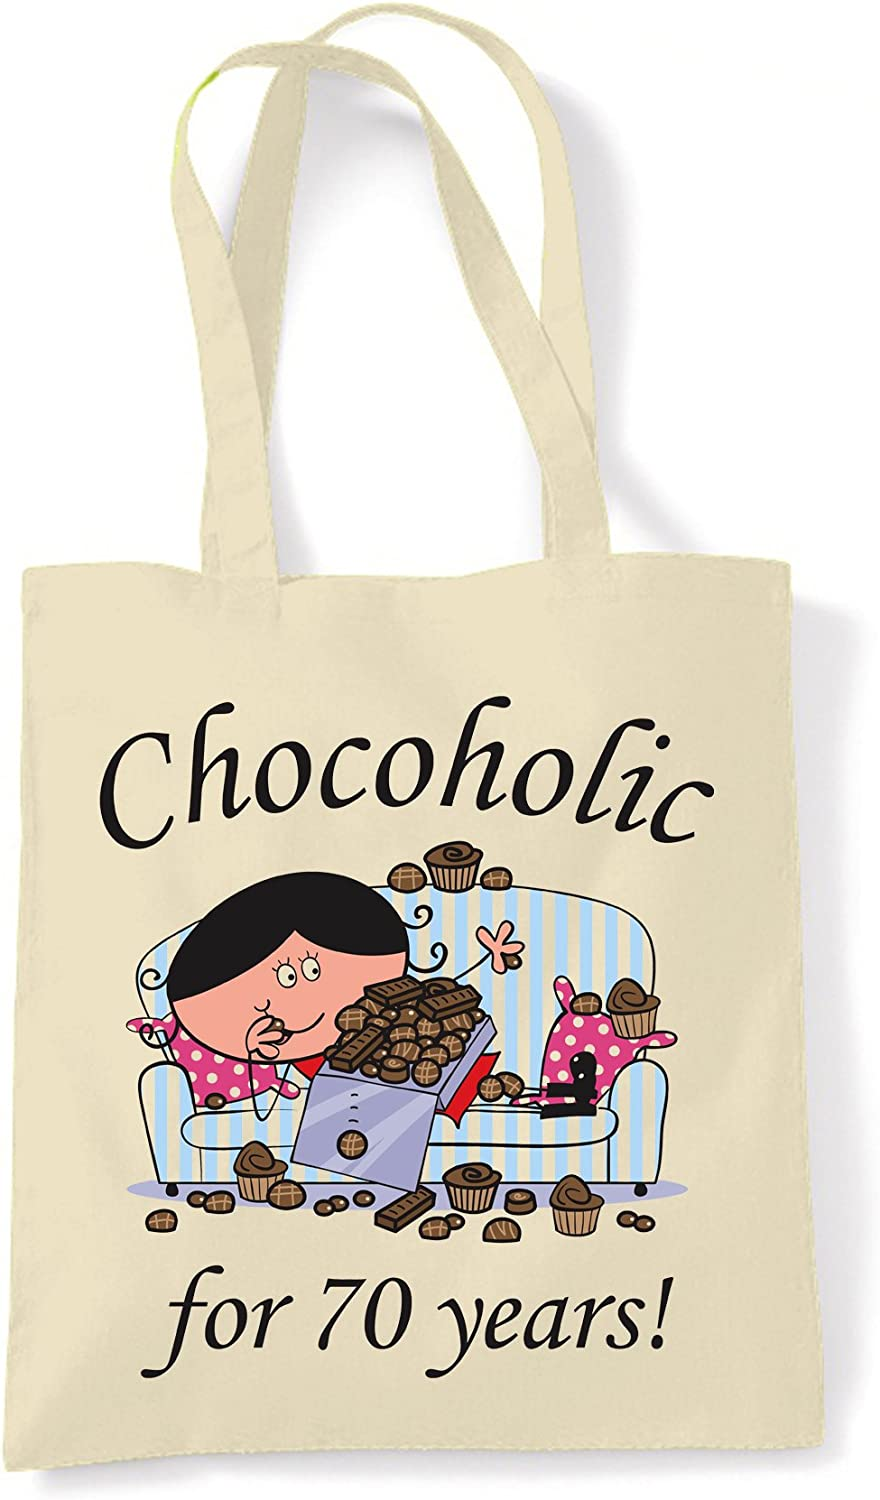 Chocoholic For 70 Years 70th Birthday Tote//Shoulder Bag